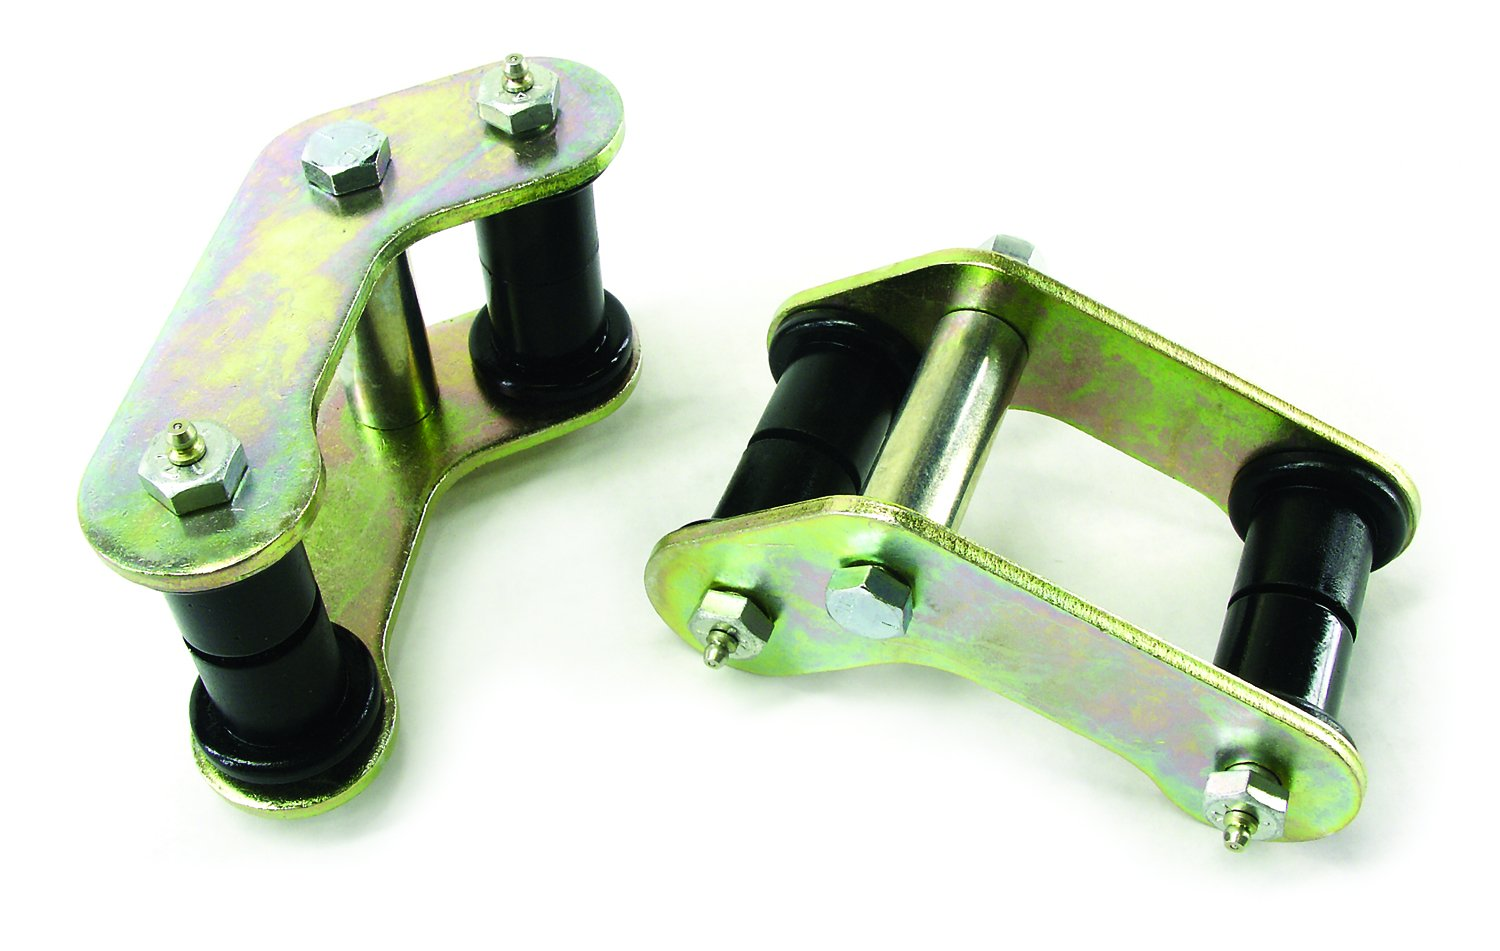 TeraFlex 1934100 Rear Kickback Shackle Kit (Jeep YJ 87-95,Pair) by Teraflex